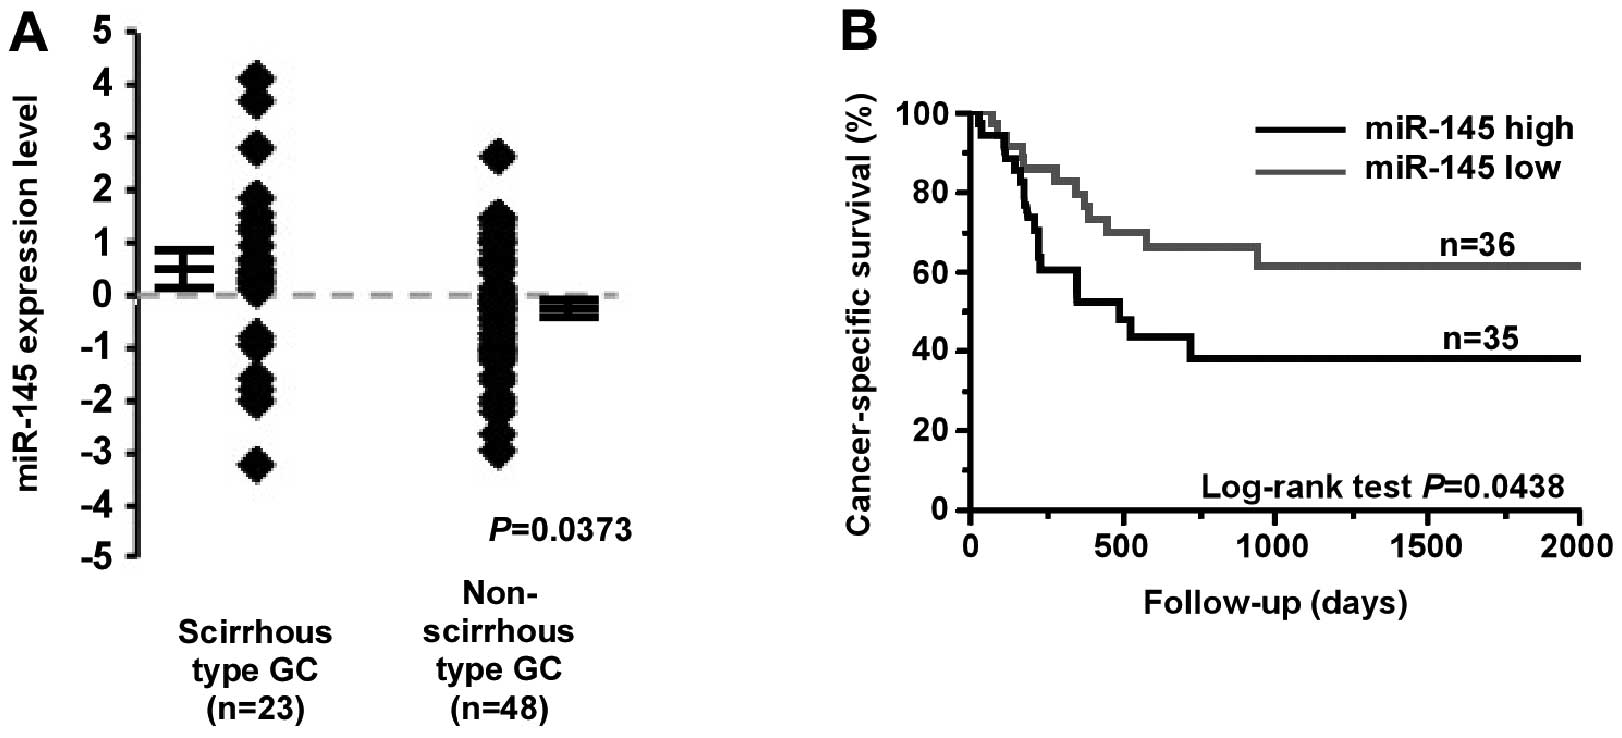 Microrna 145 Is A Potential Prognostic Factor Of Scirrhous Type Day 32 Interaction Diagrams And Force Figure 2 Relationship Between Mir Expression Patient Prognosis Levels In Formalin Fixed Paraffin Embedded Gastric Cancer